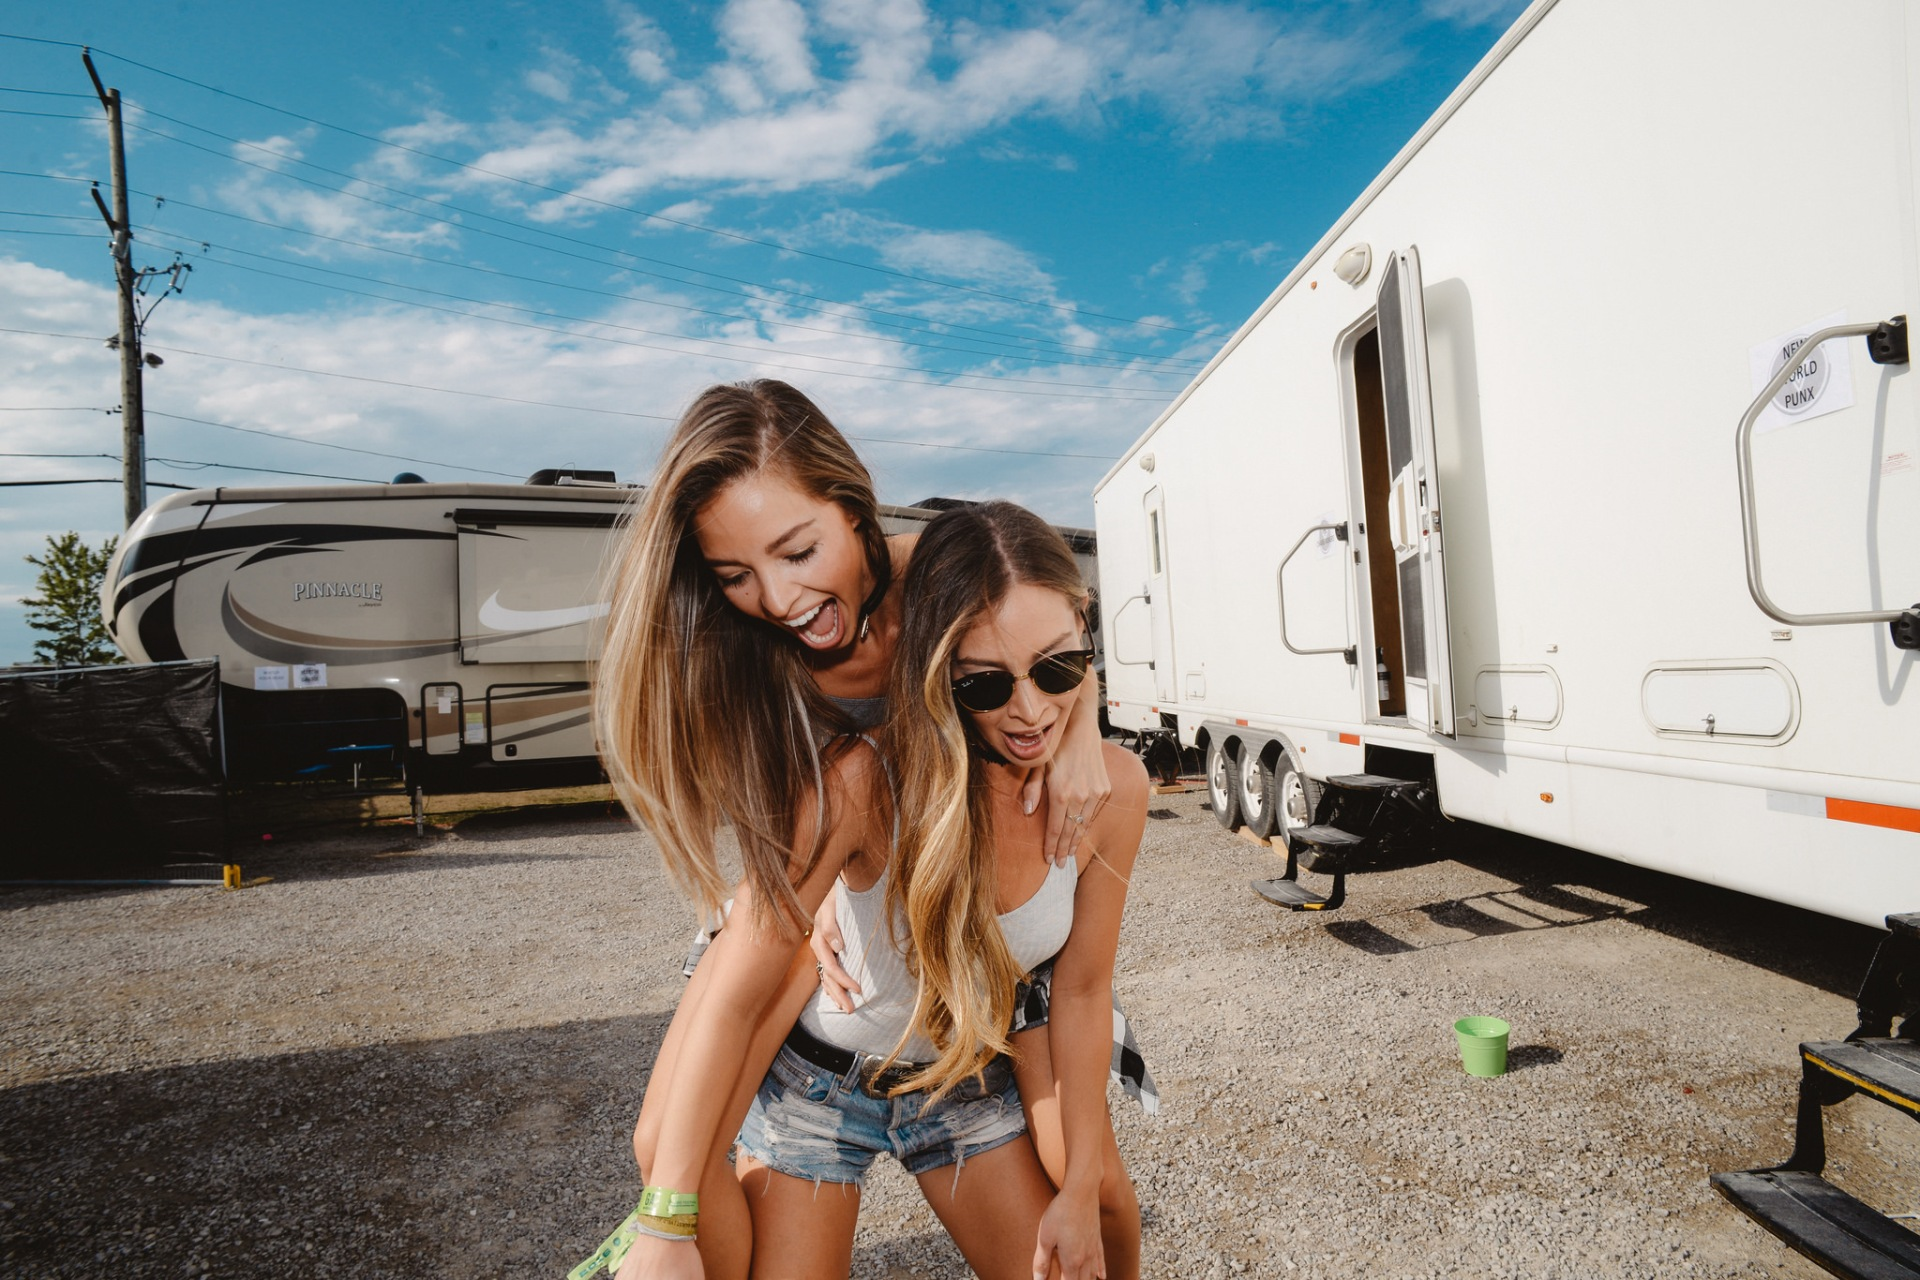 These Are The 10 Oddest Friendships In The Zodiac That Actually Work